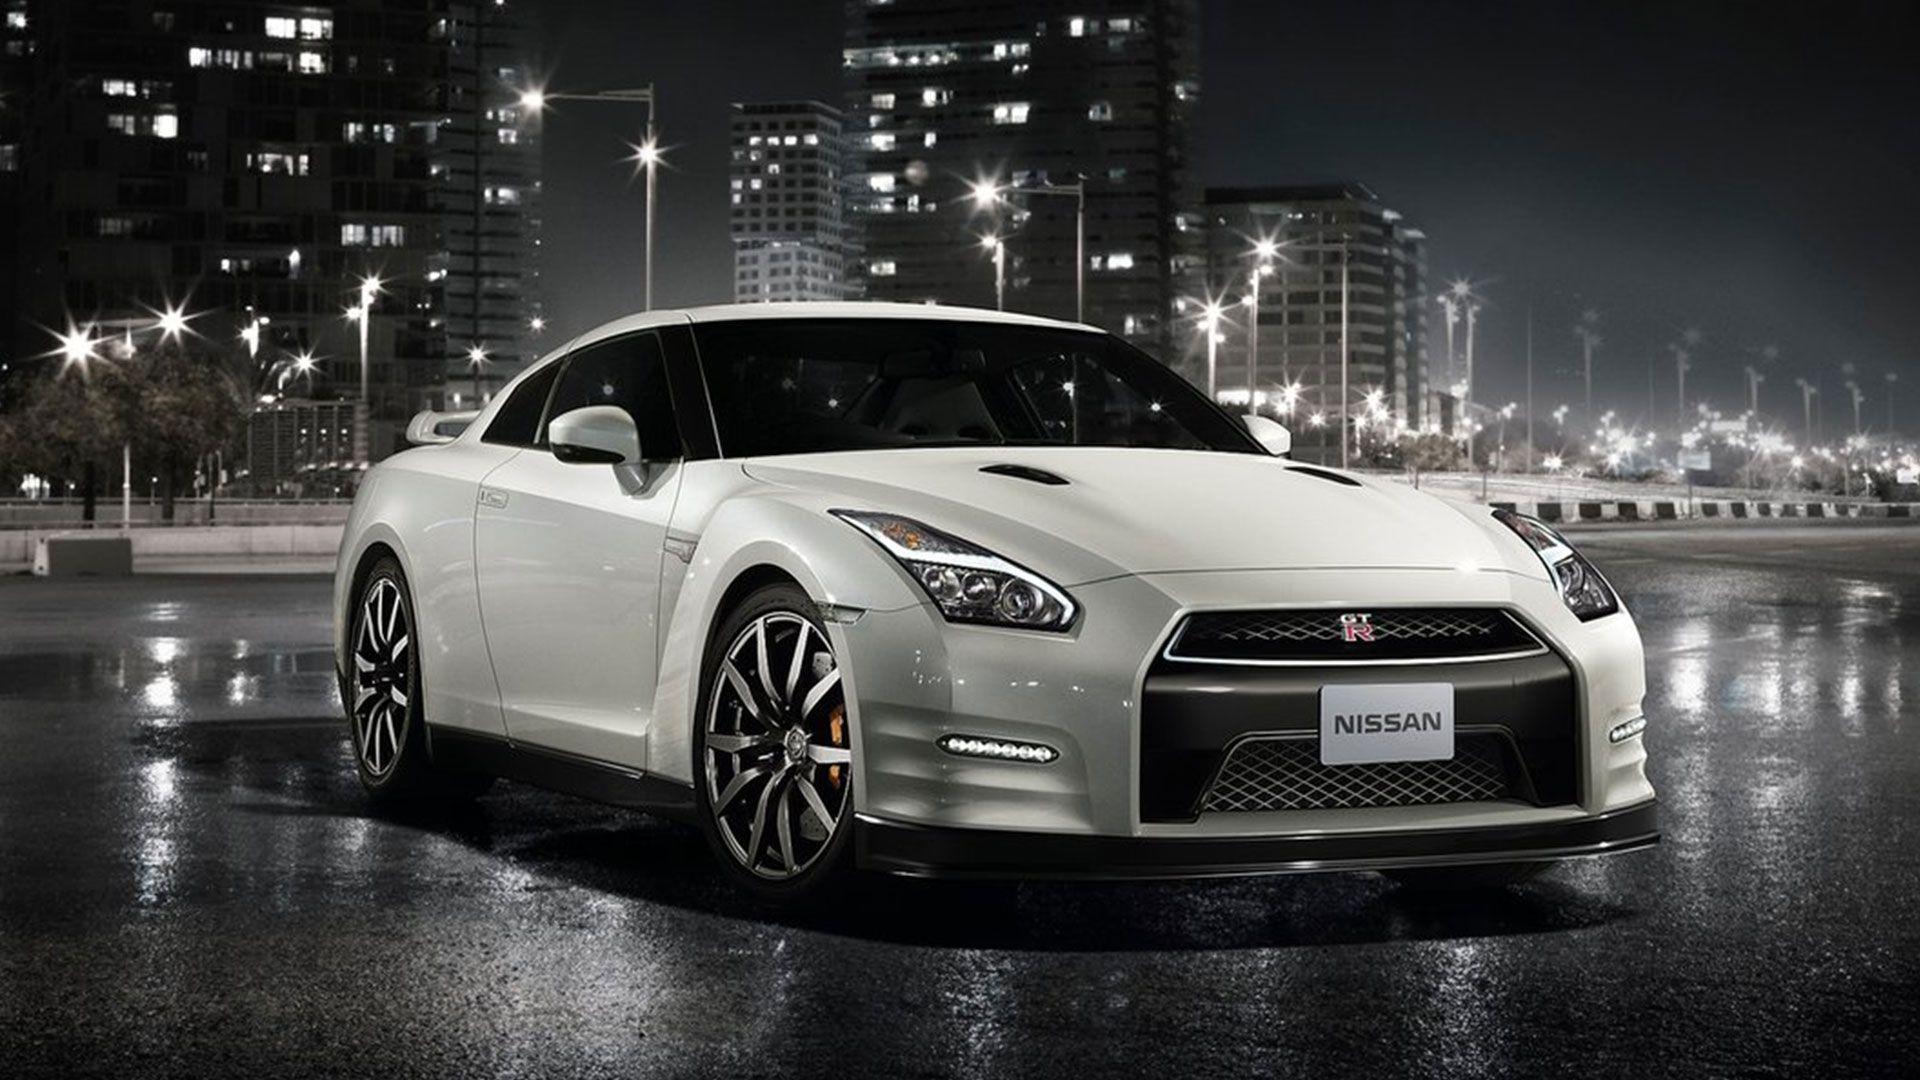 2010 nissan gt r wallpapers wallpaper cave - Nissan skyline background ...